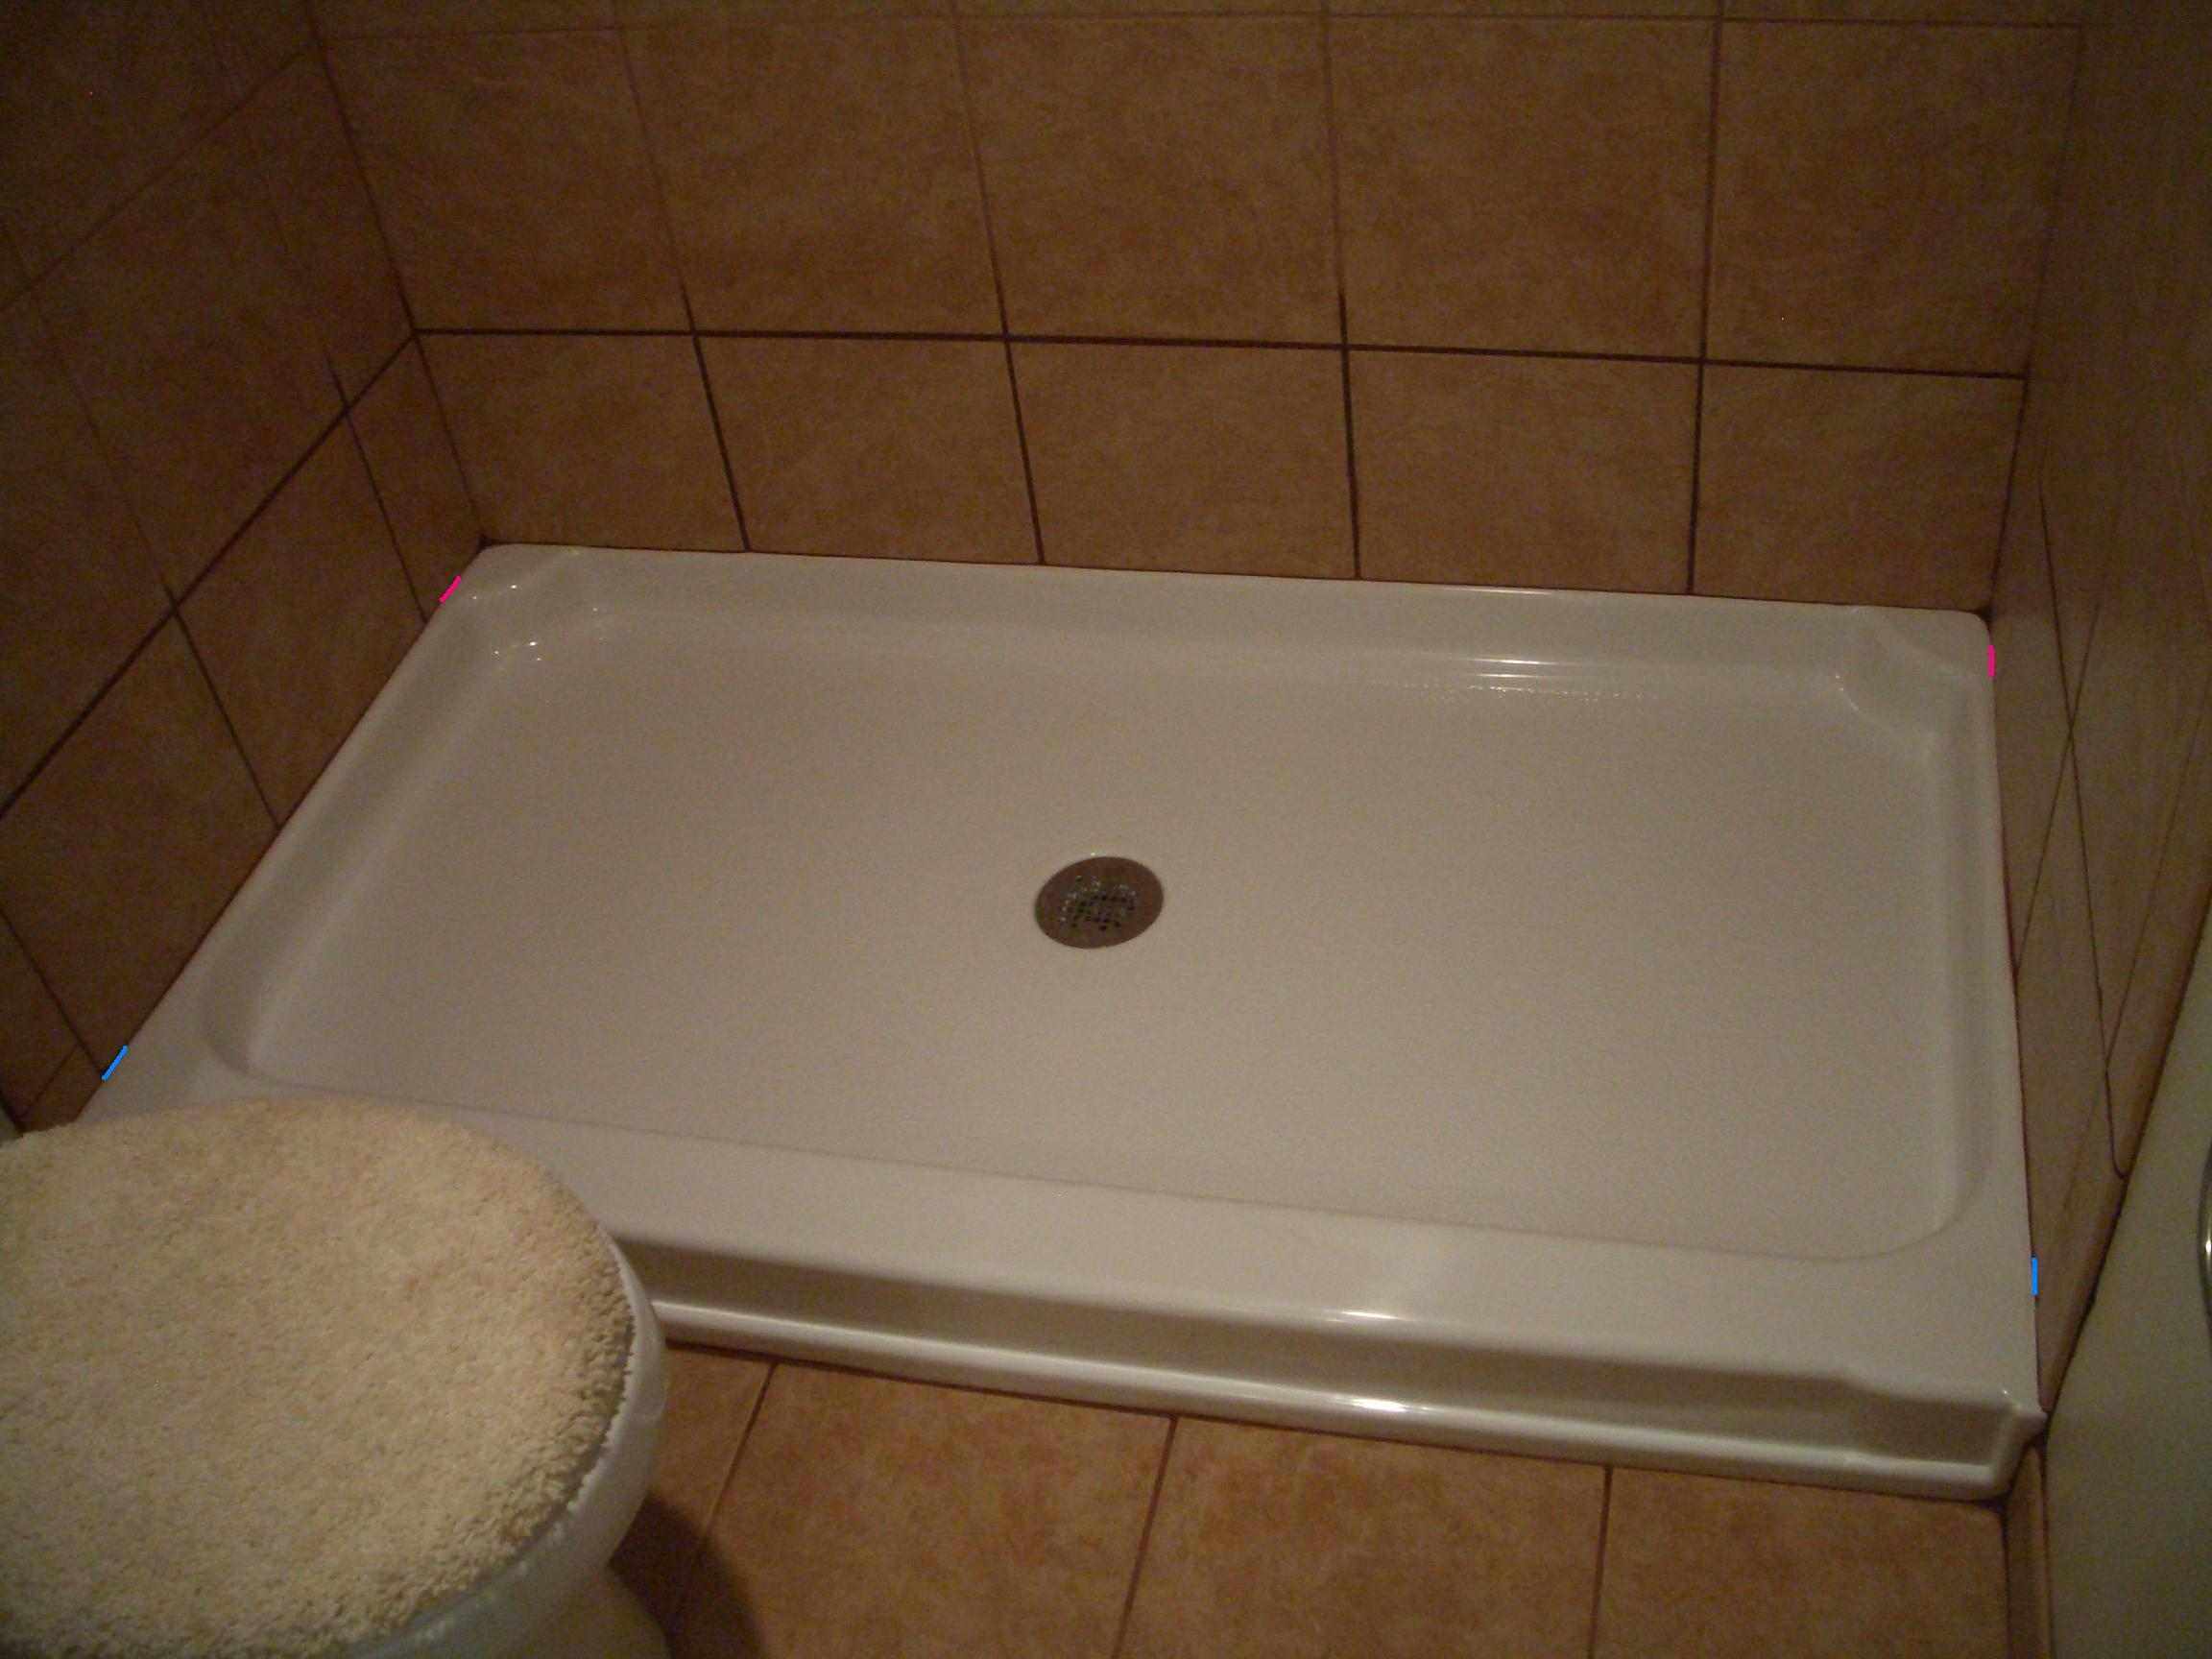 Beau Weep Hole Location In For A Shower Basin